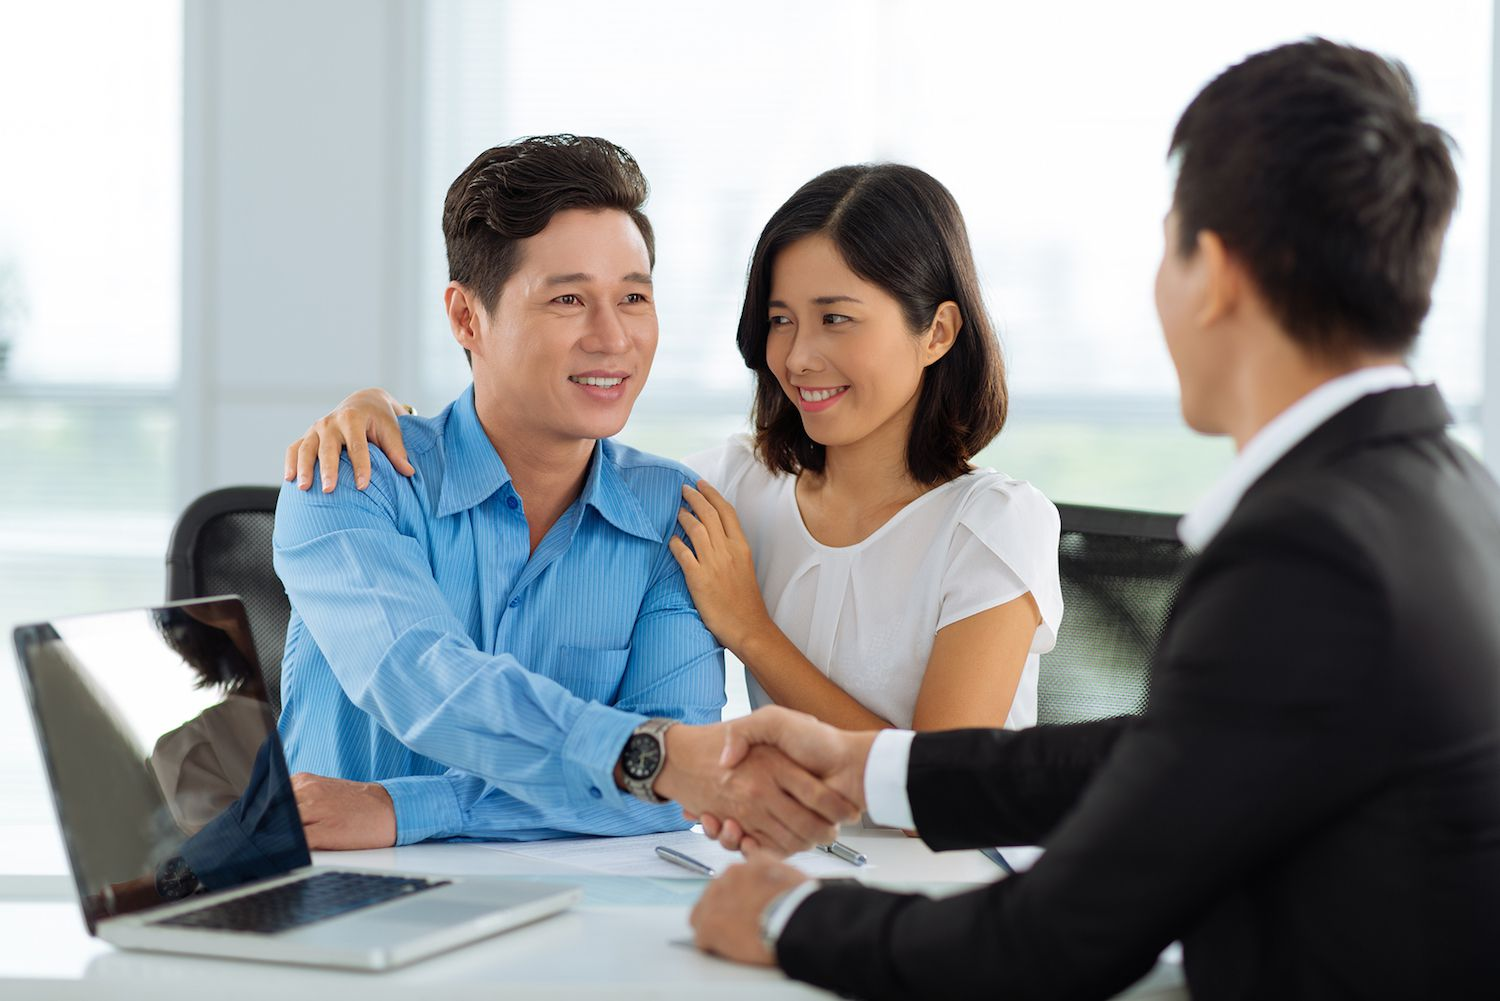 Buying a home? Here's when using a mortgage broker might be wise.